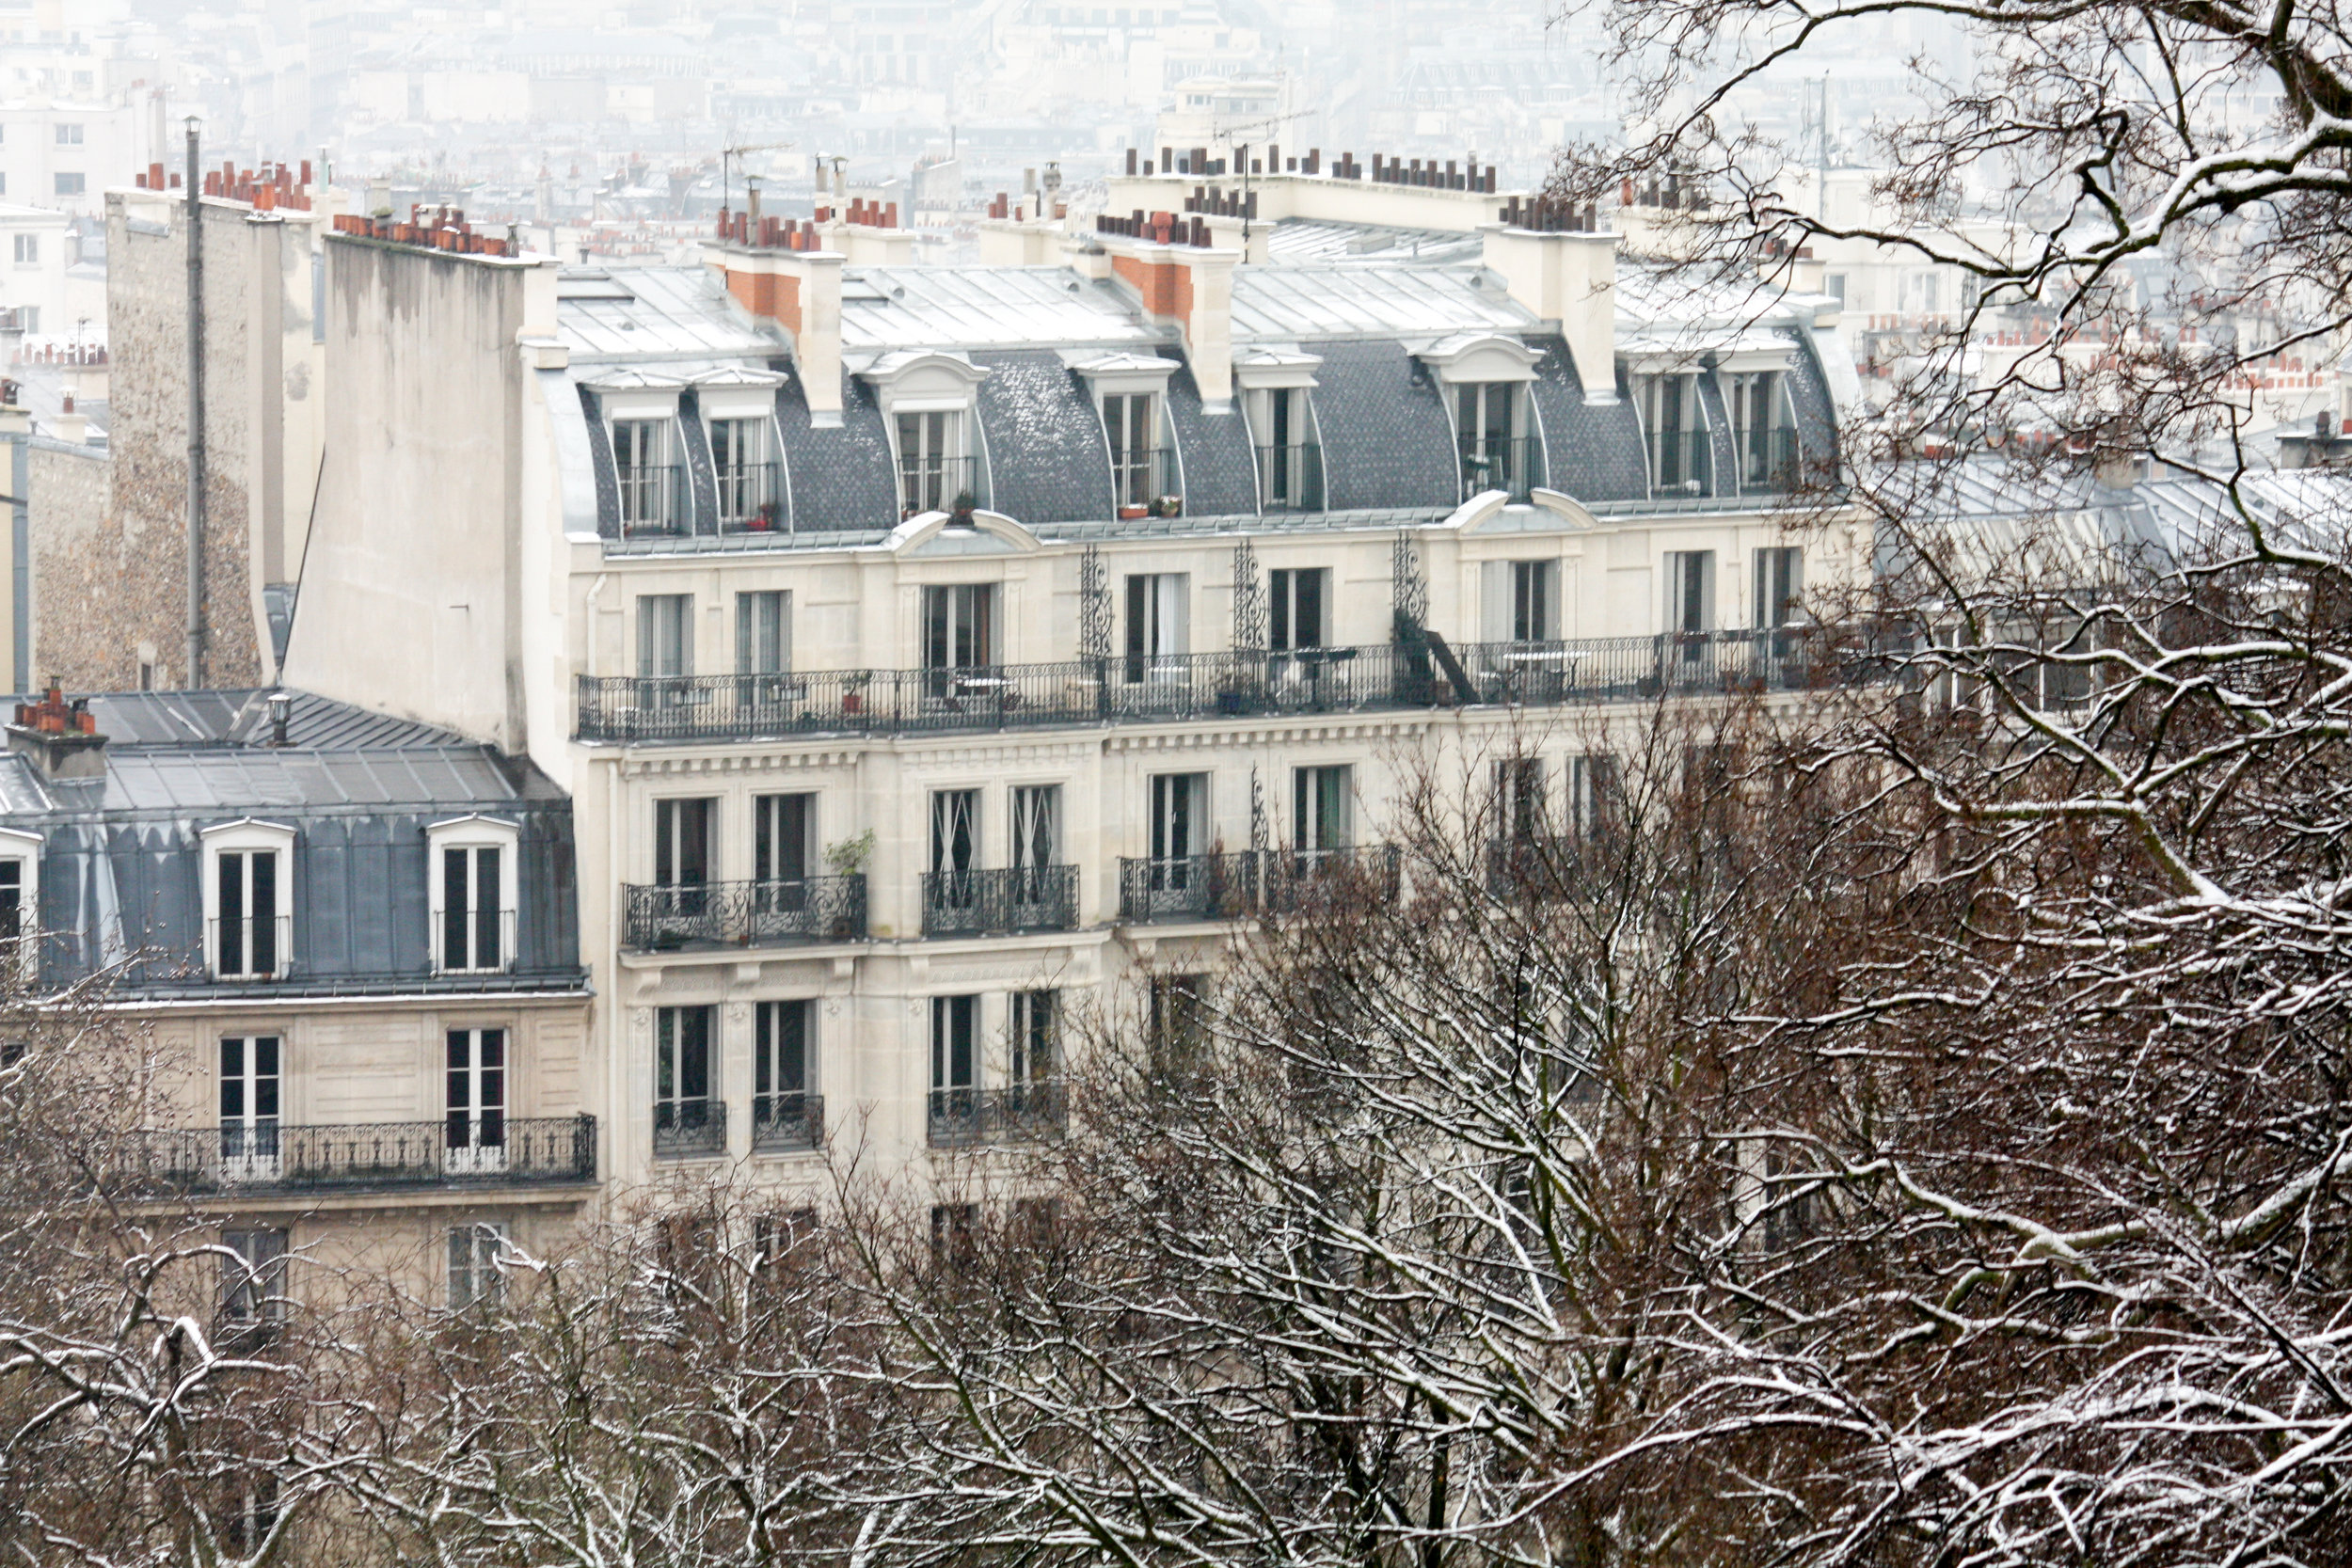 paris in the snow by rebecca plotnick